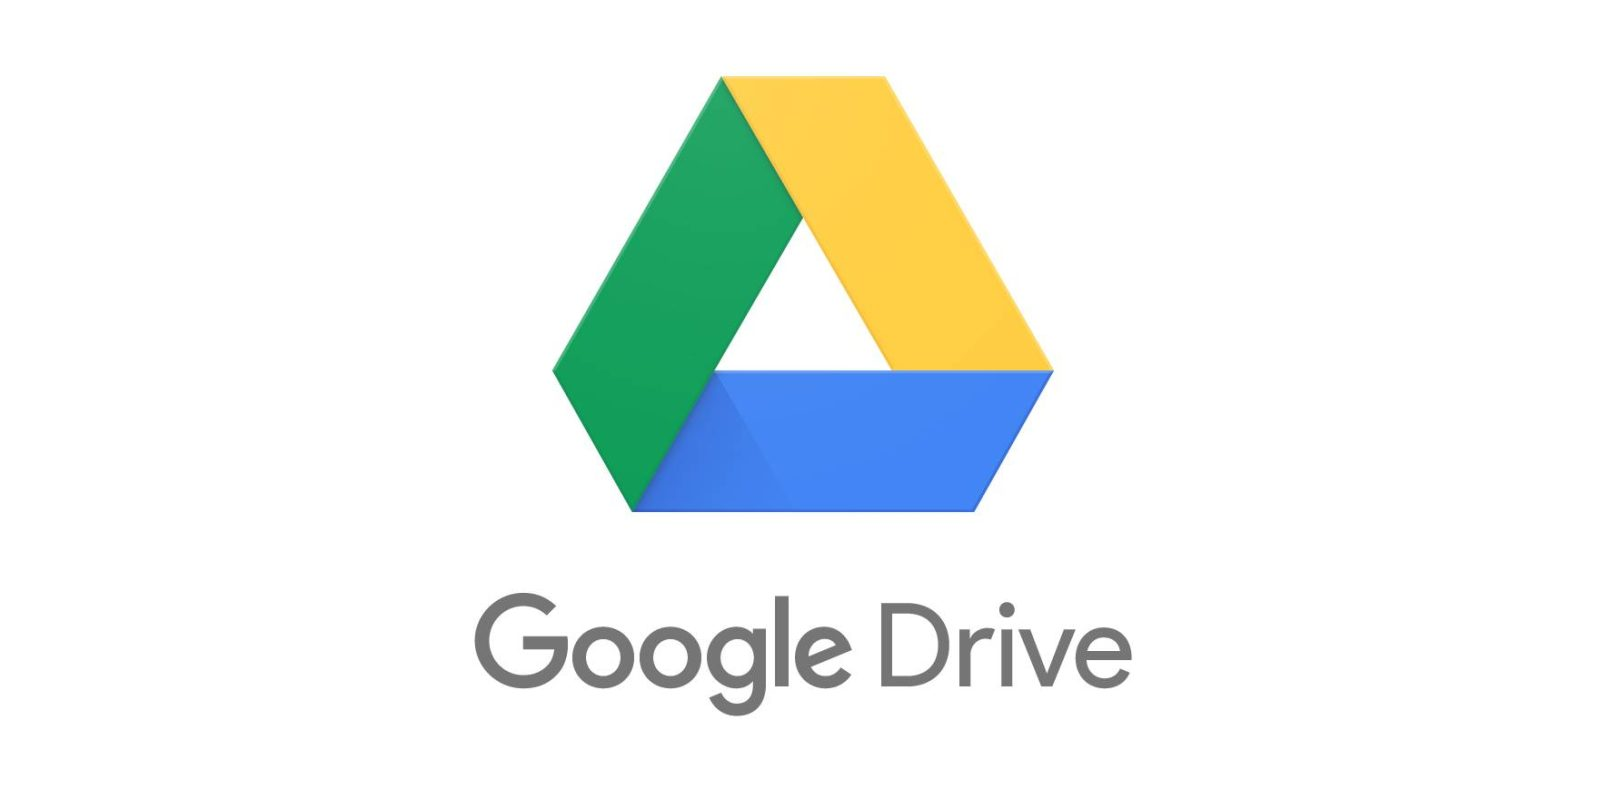 It's not just you, Google Drive is down for some today